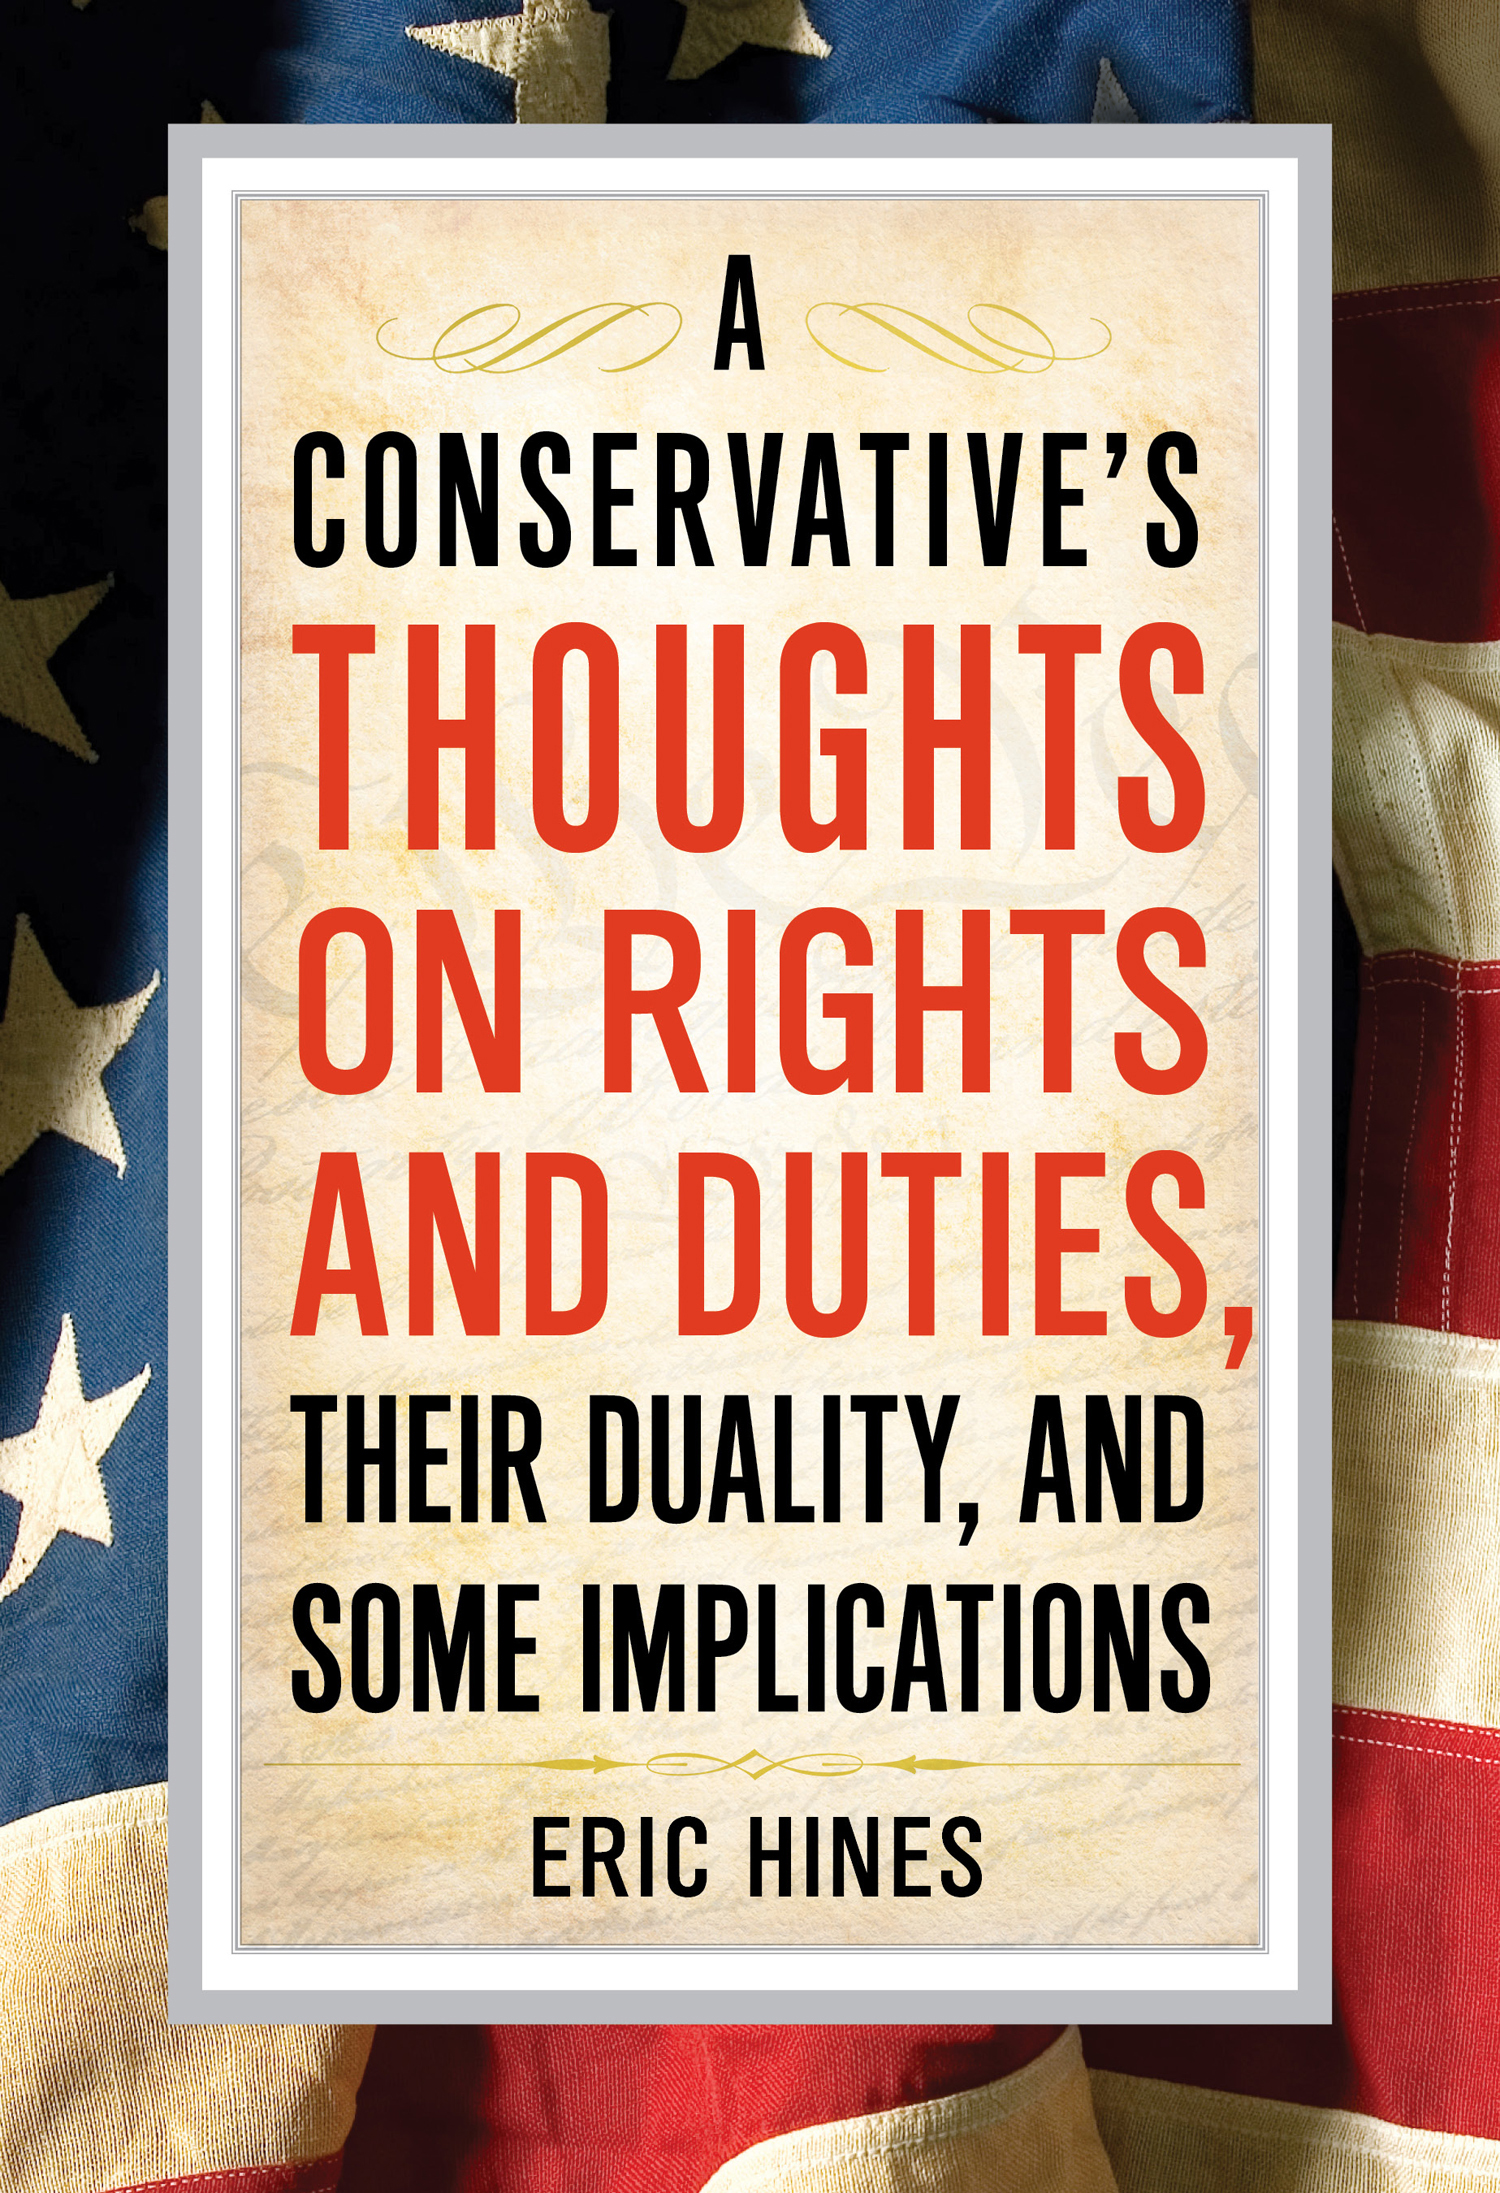 CONSERVATIVE THOUGHTS.2.13.14.ss.jpg